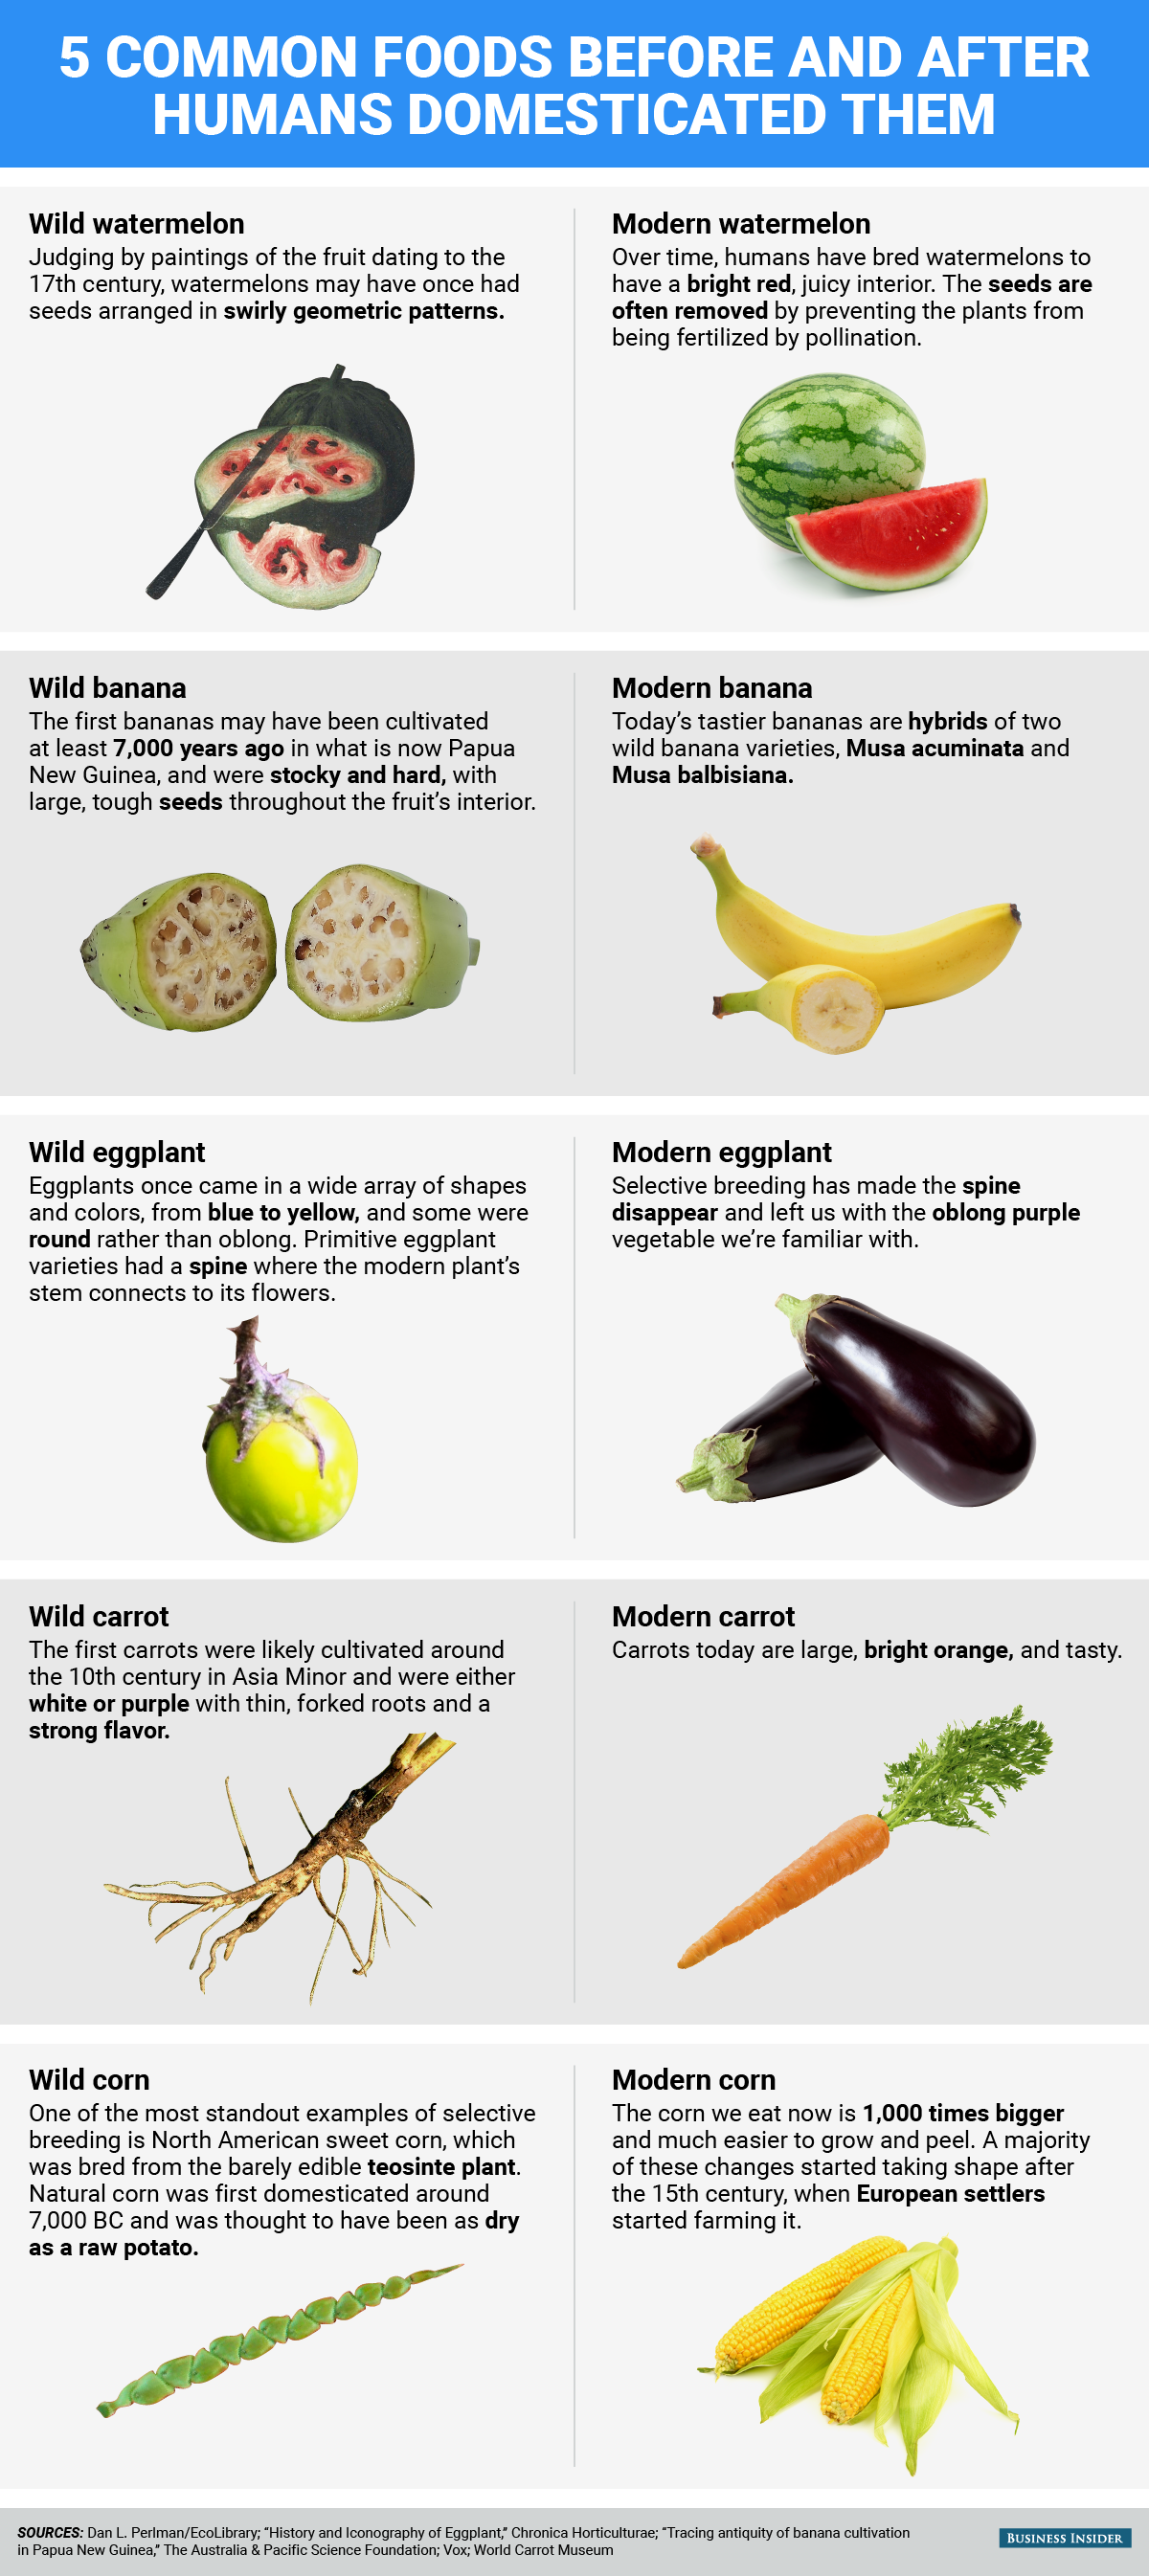 bi_graphics 5 common foods before and after humans domesticated them (1)